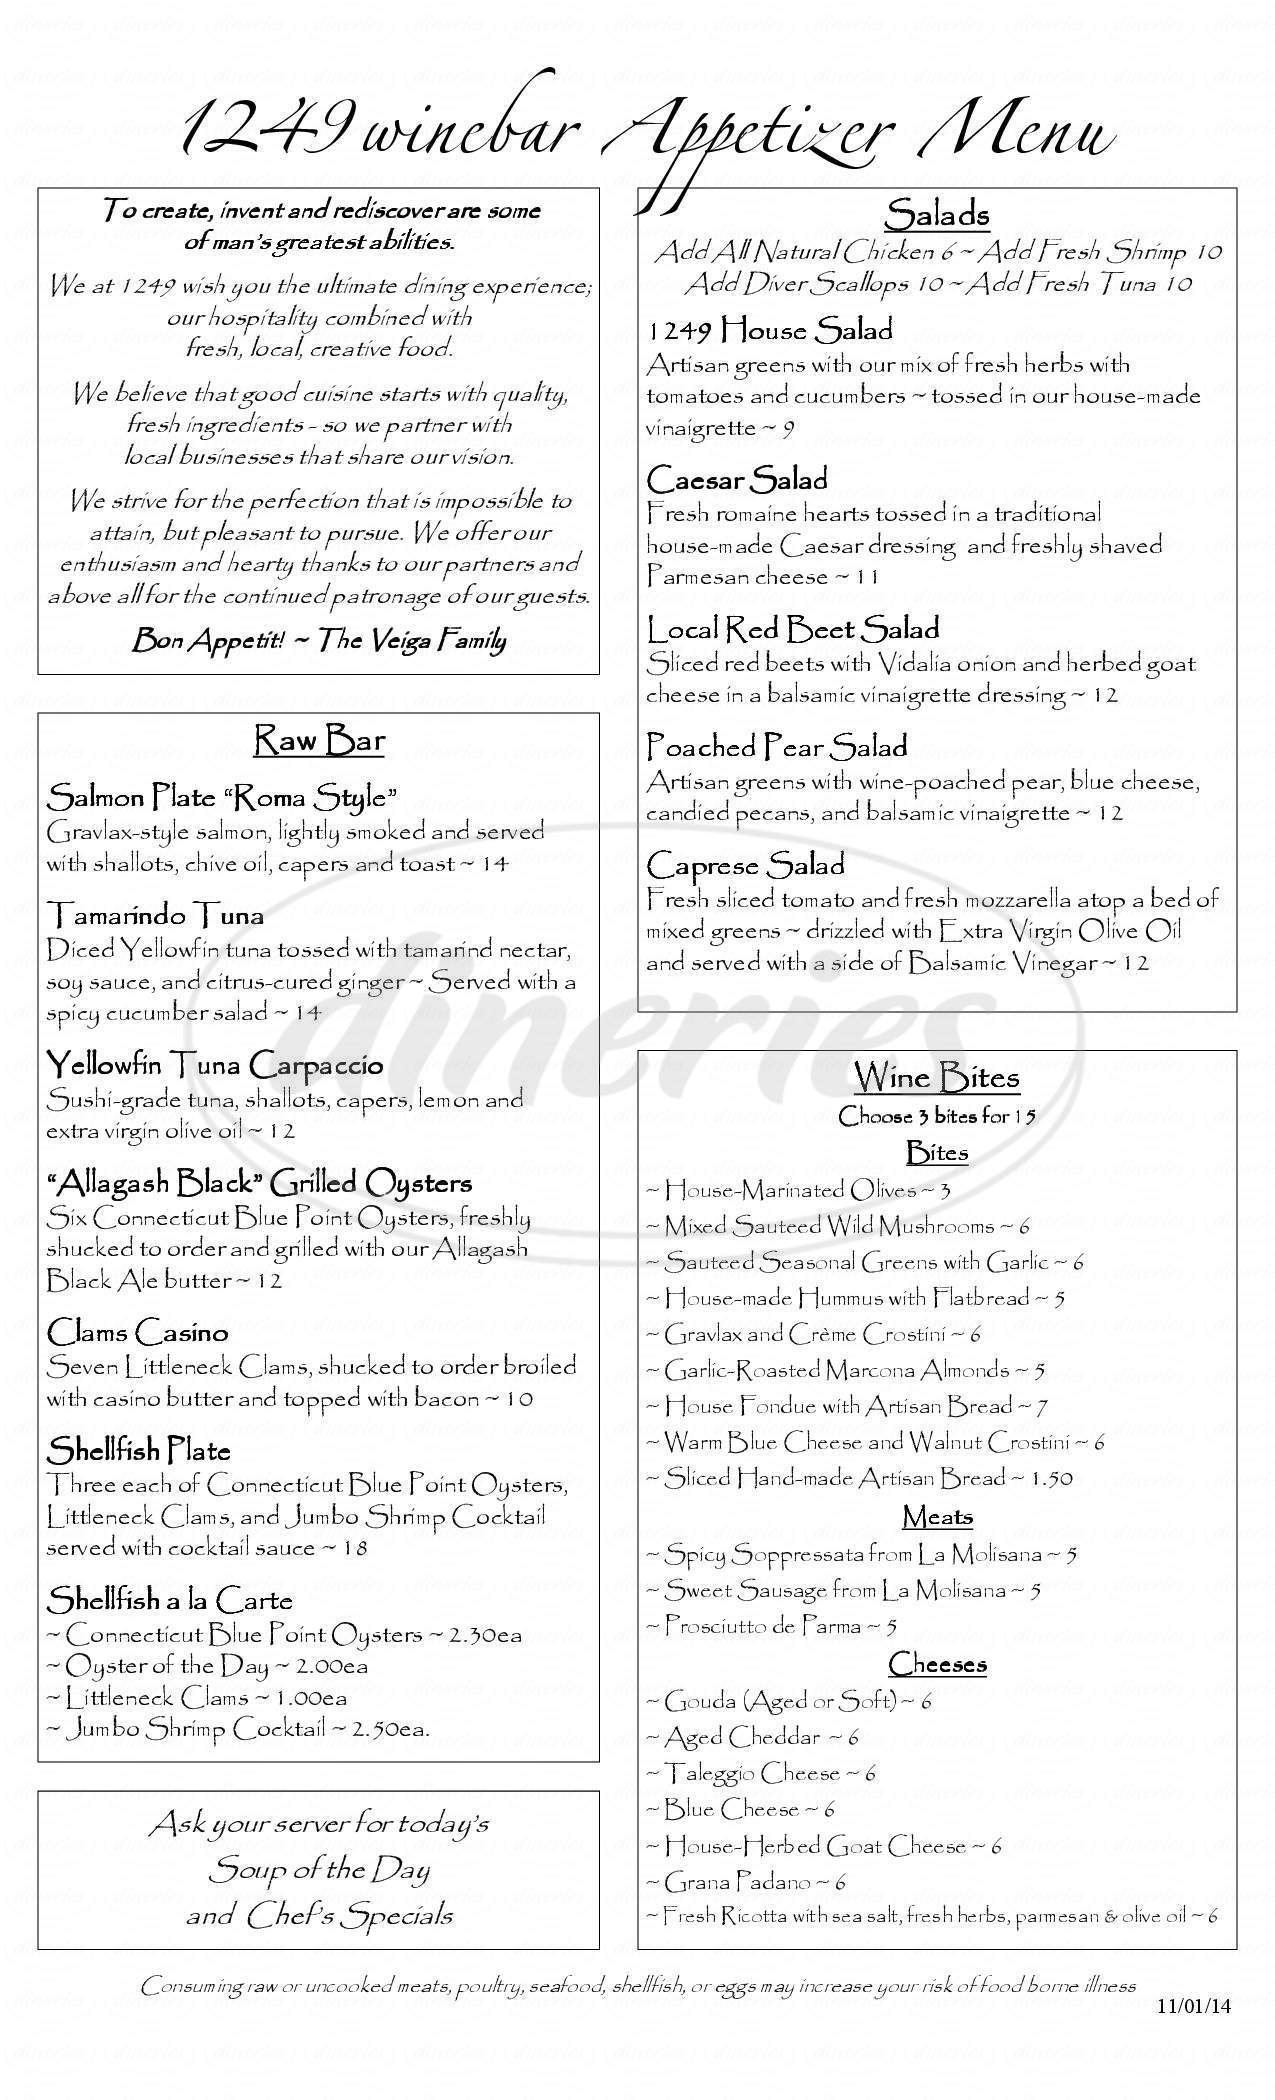 menu for 1249 Wine Bar